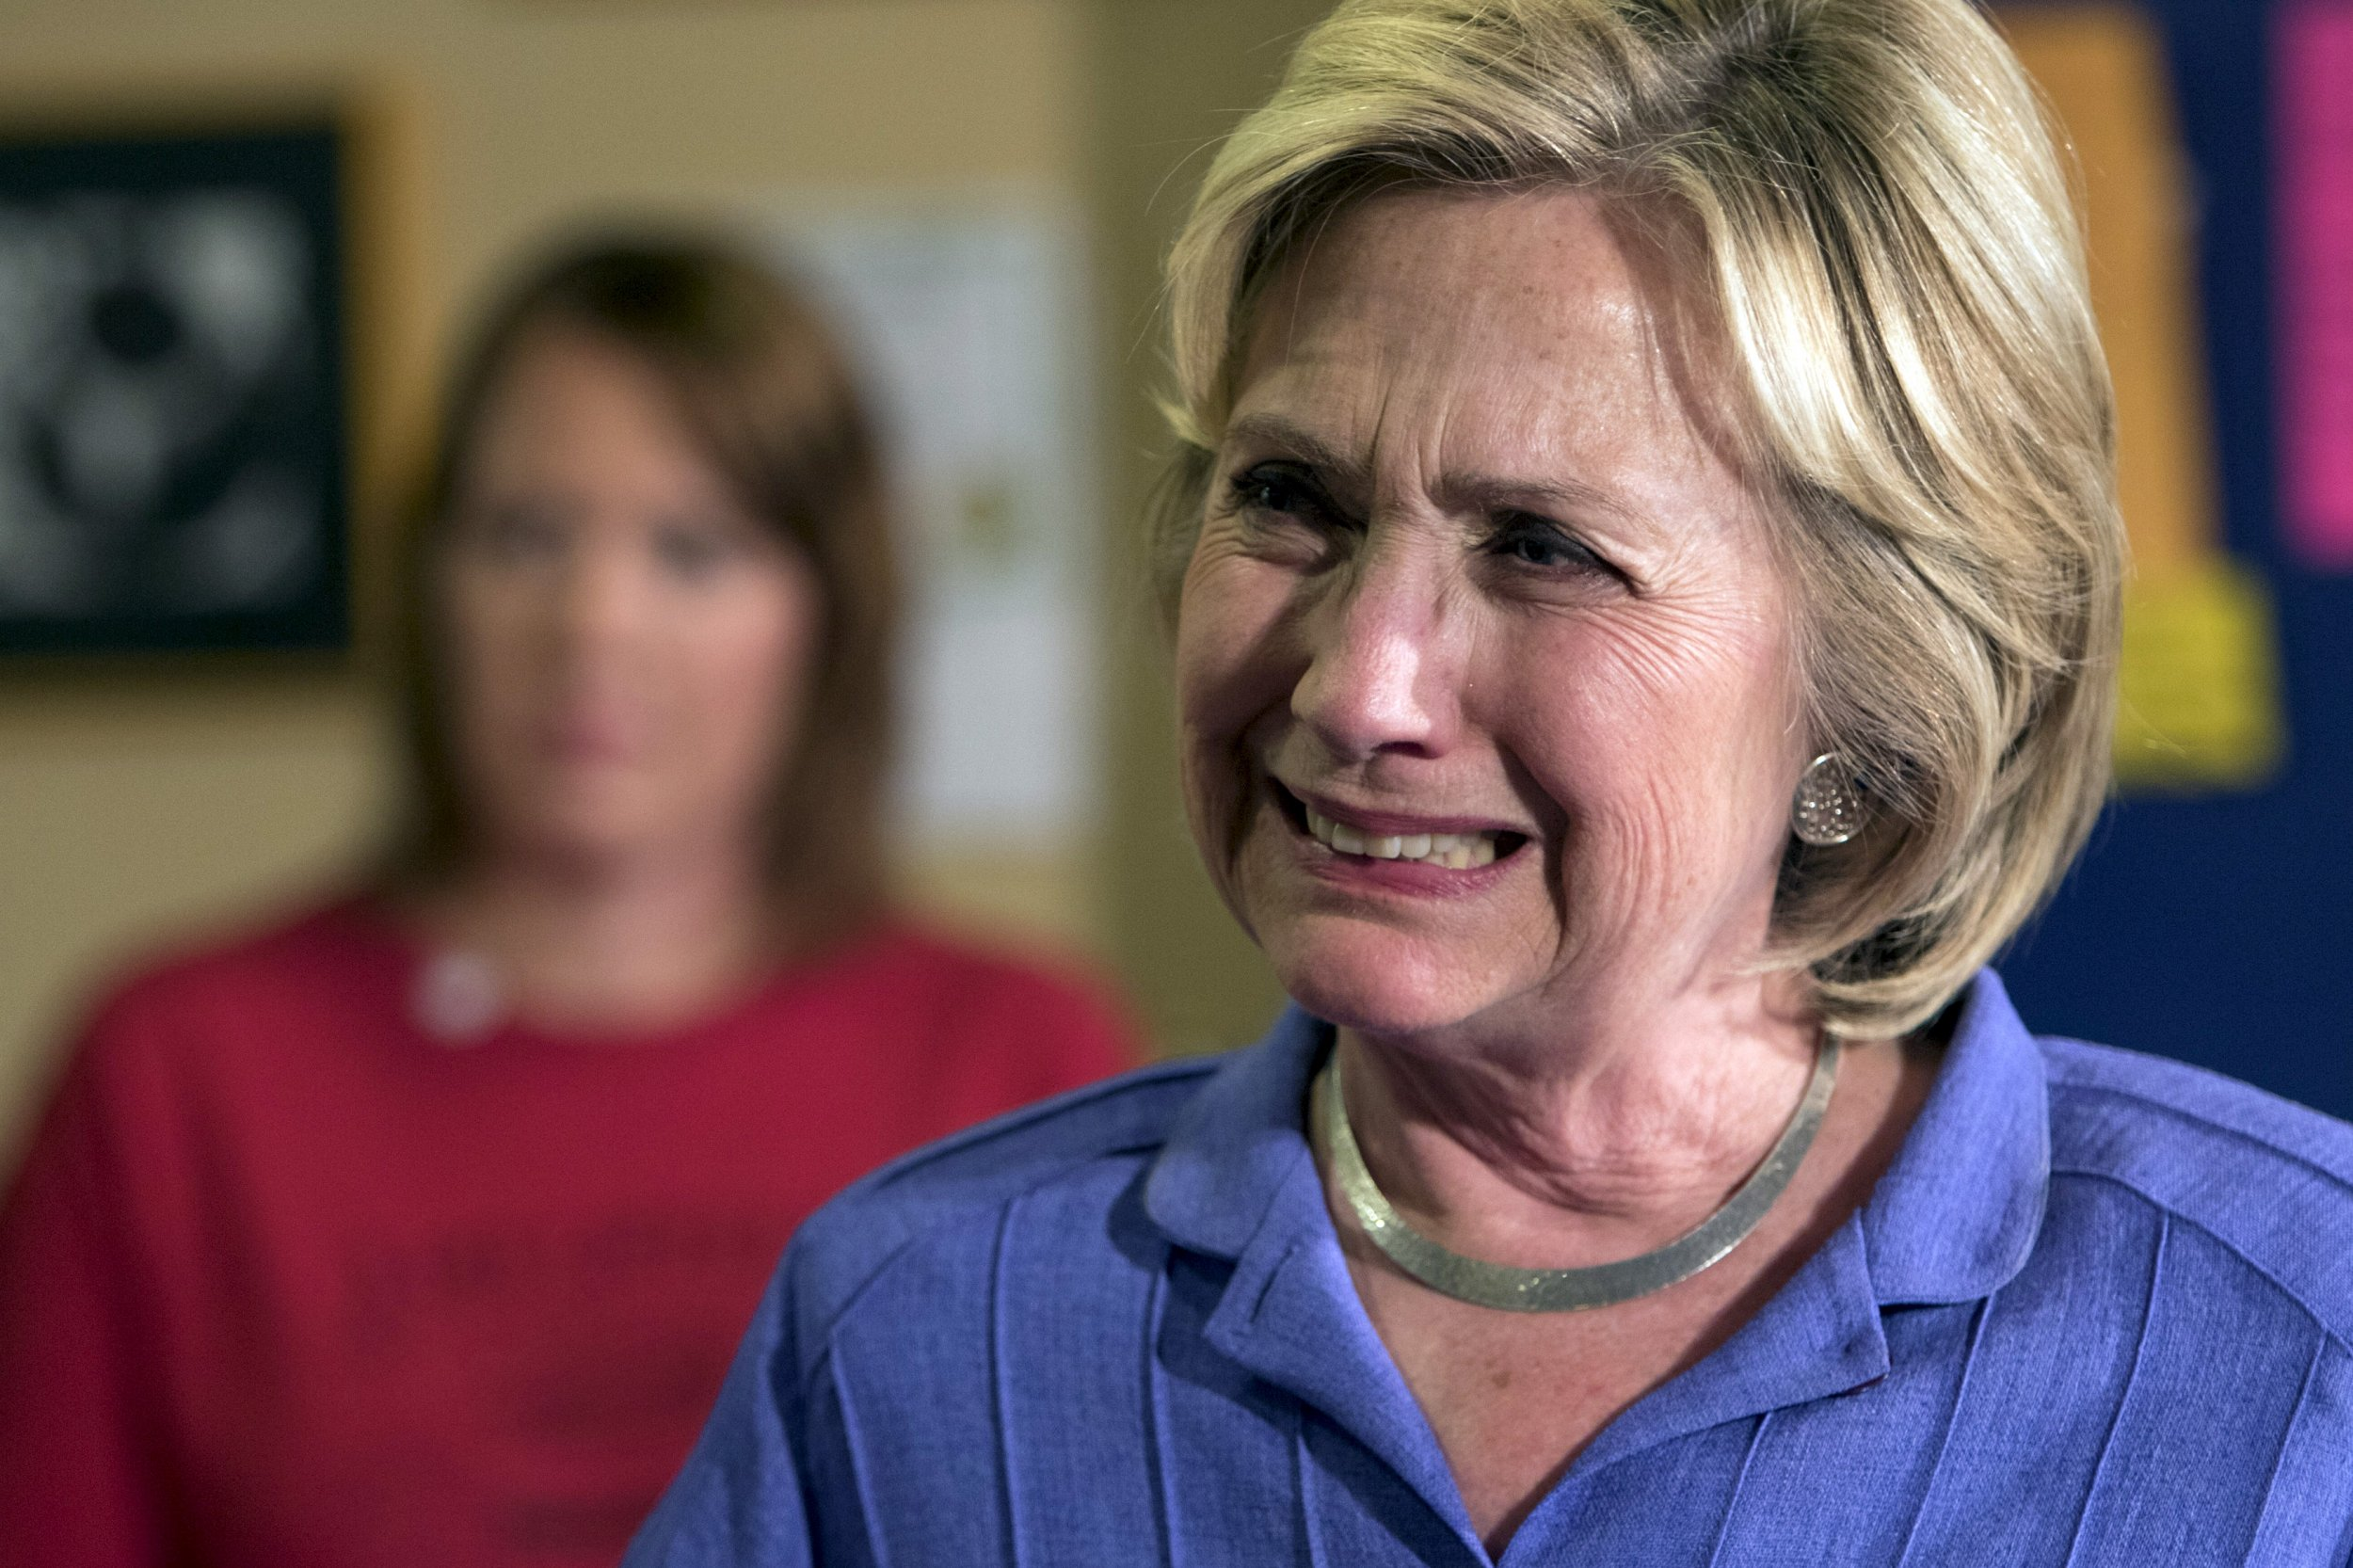 Clinton Campaign Wants to Humanize Hillary